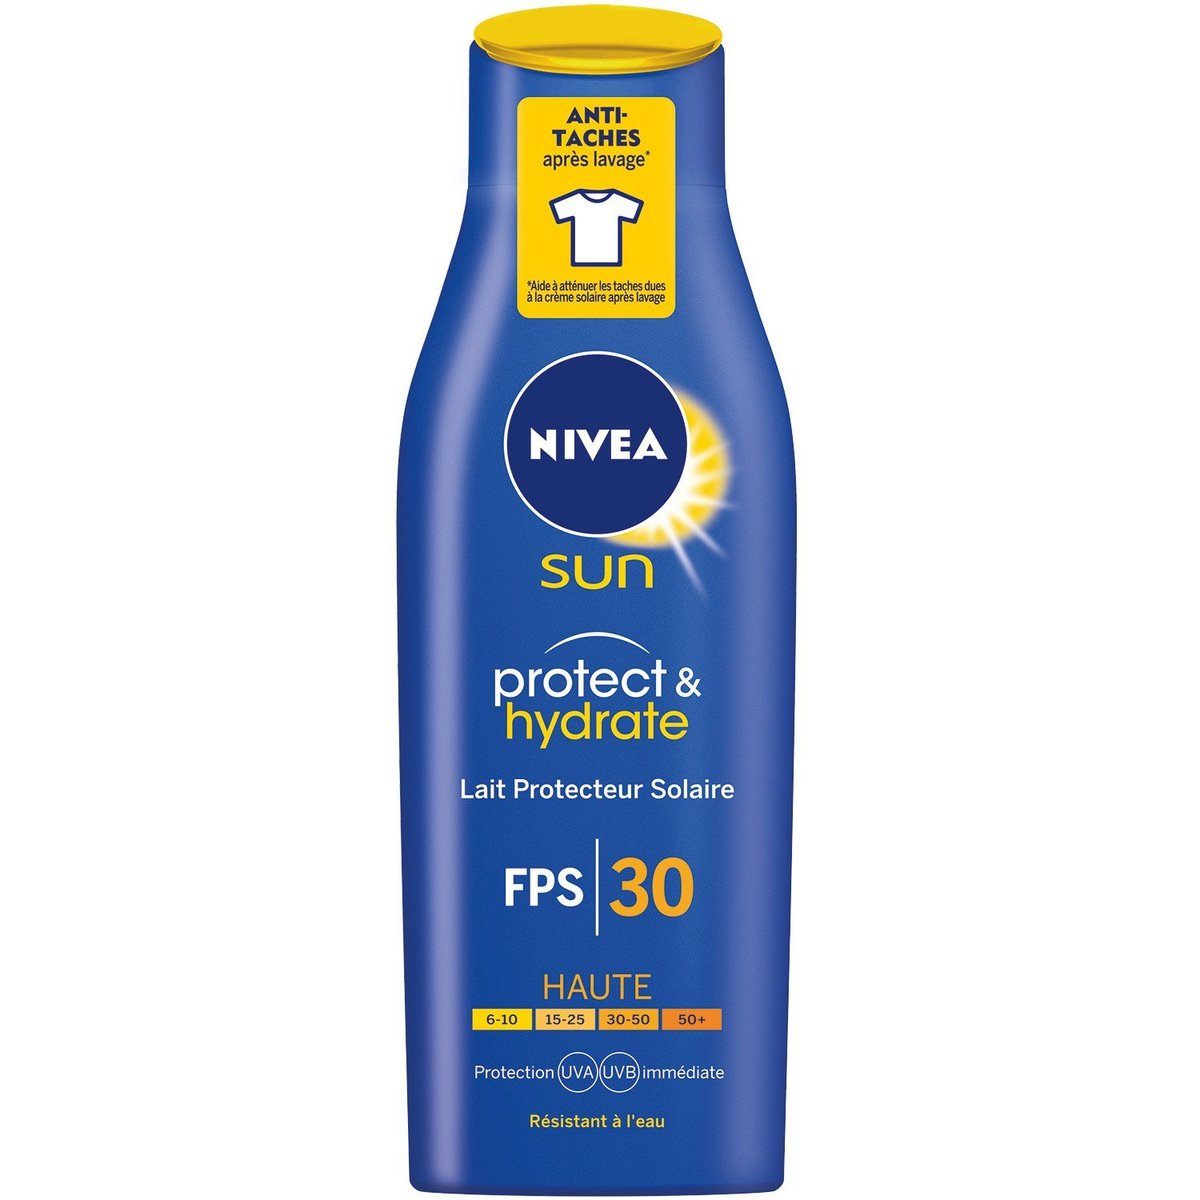 NIVEA - Moisturizing Sunscreen SPF30 - 200ml